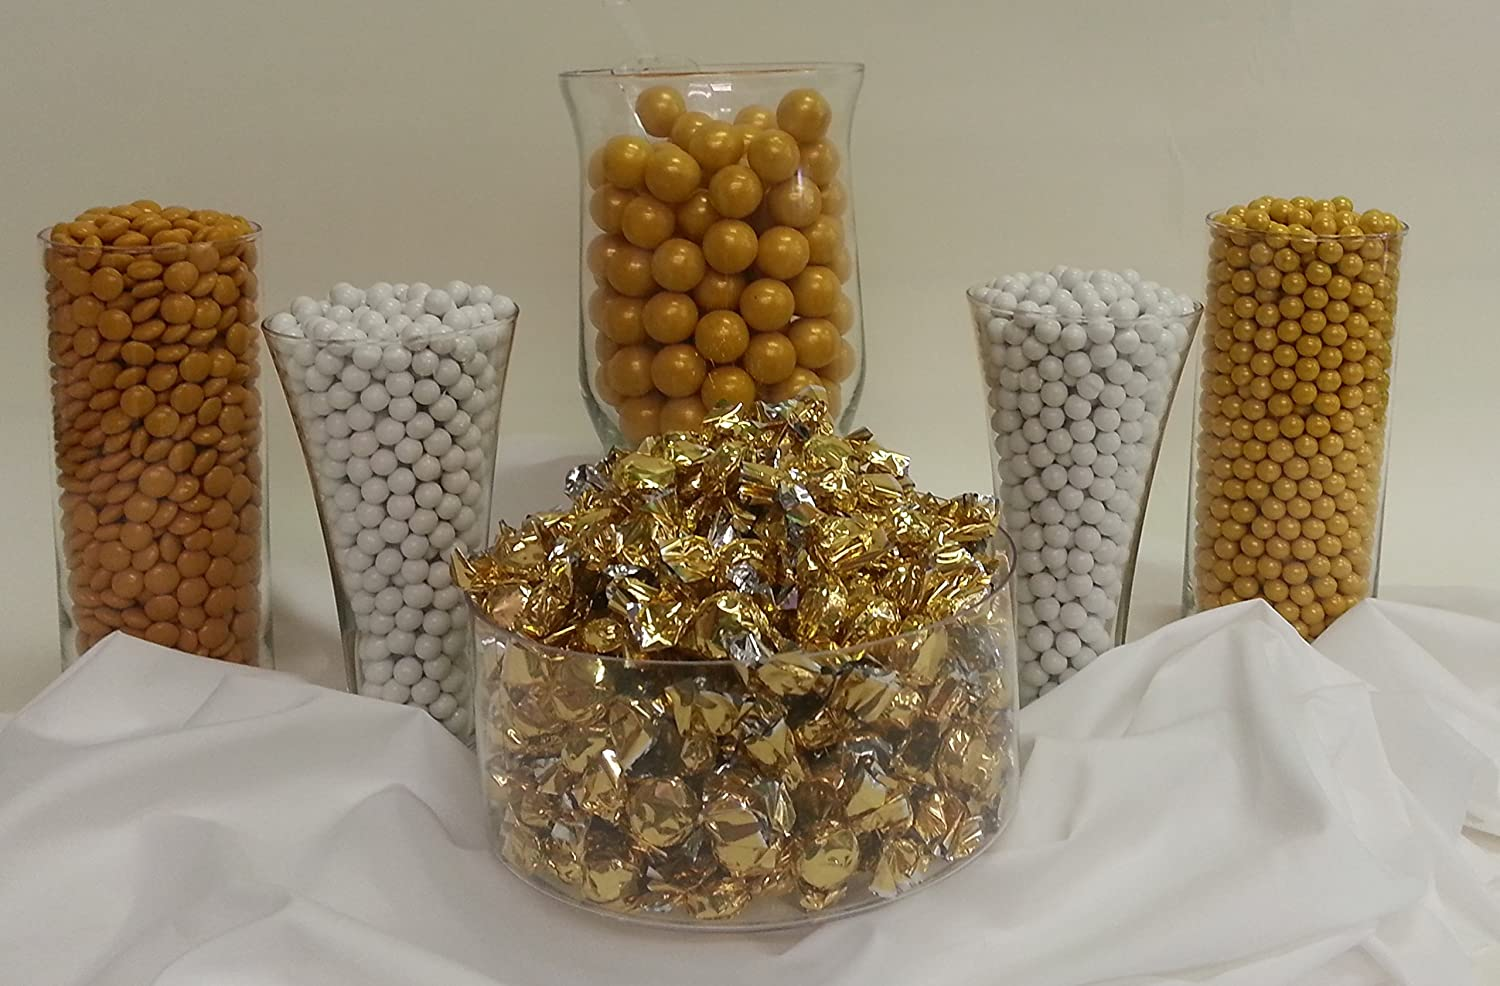 Amazon.com : Gold Candy Buffet Kit Will Serve up to 50 Guests : Grocery &  Gourmet Food - Amazon.com : Gold Candy Buffet Kit Will Serve Up To 50 Guests